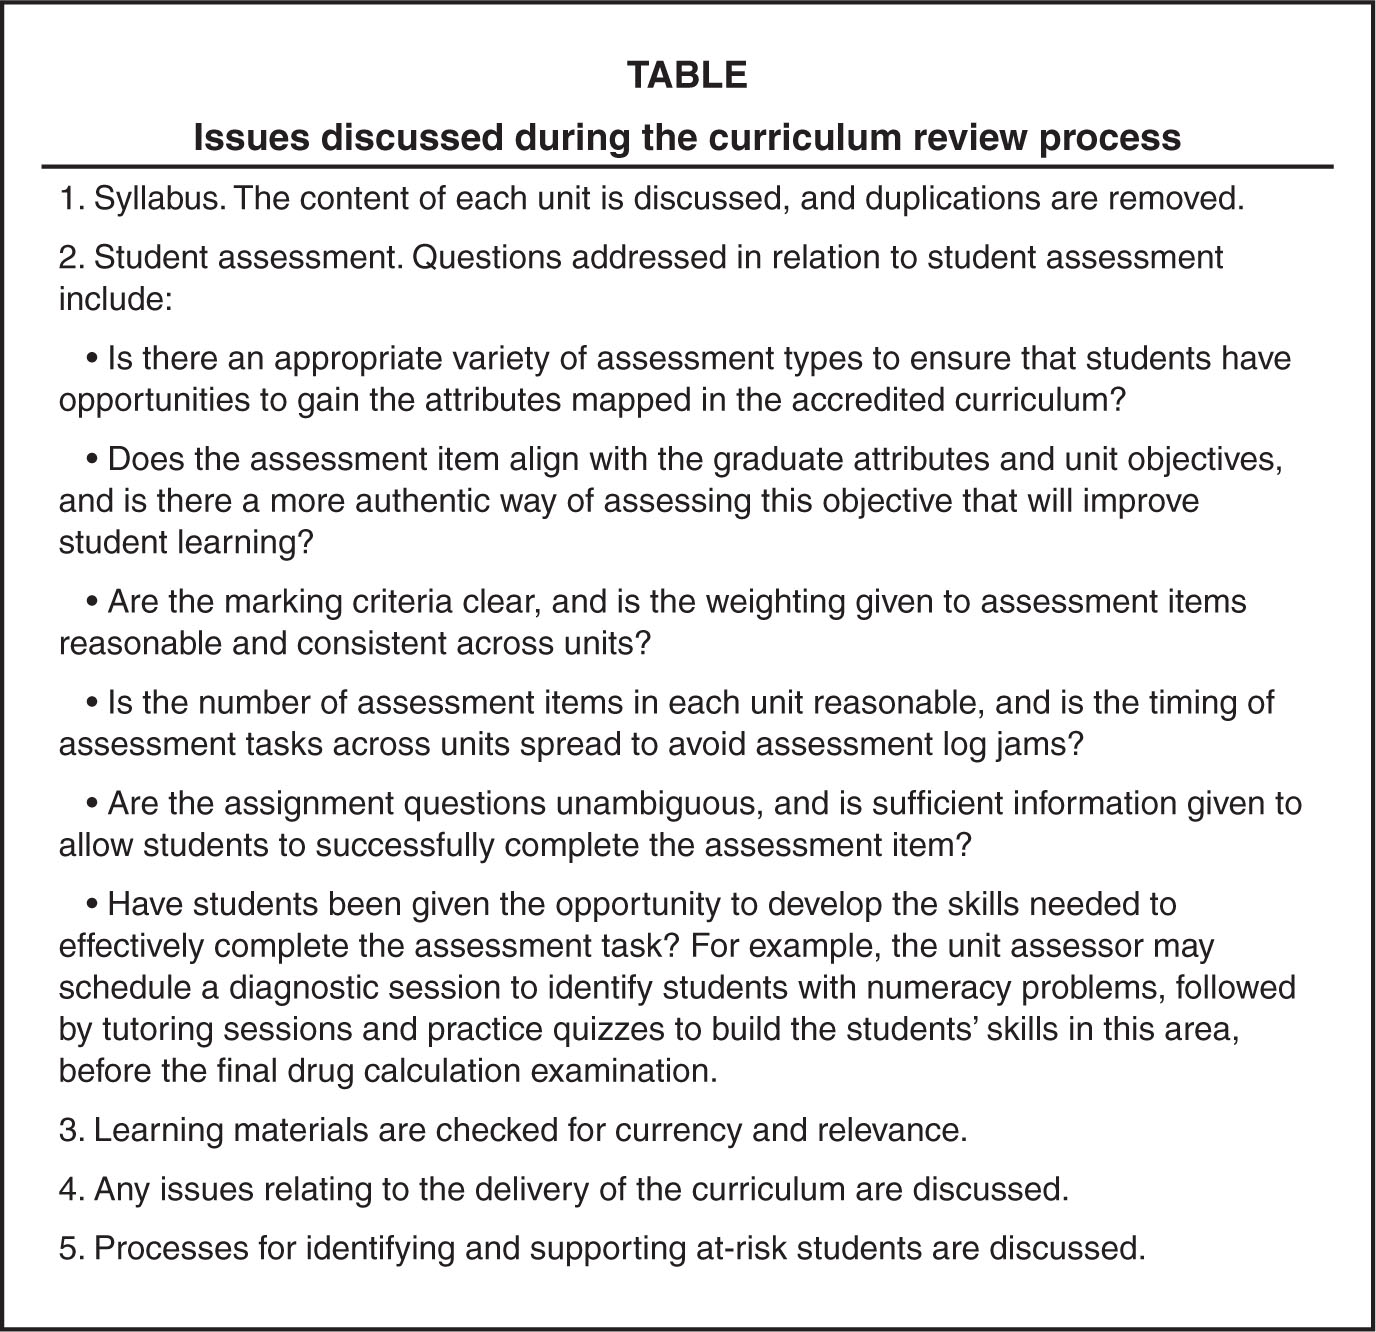 Issues Discussed During the Curriculum Review Process